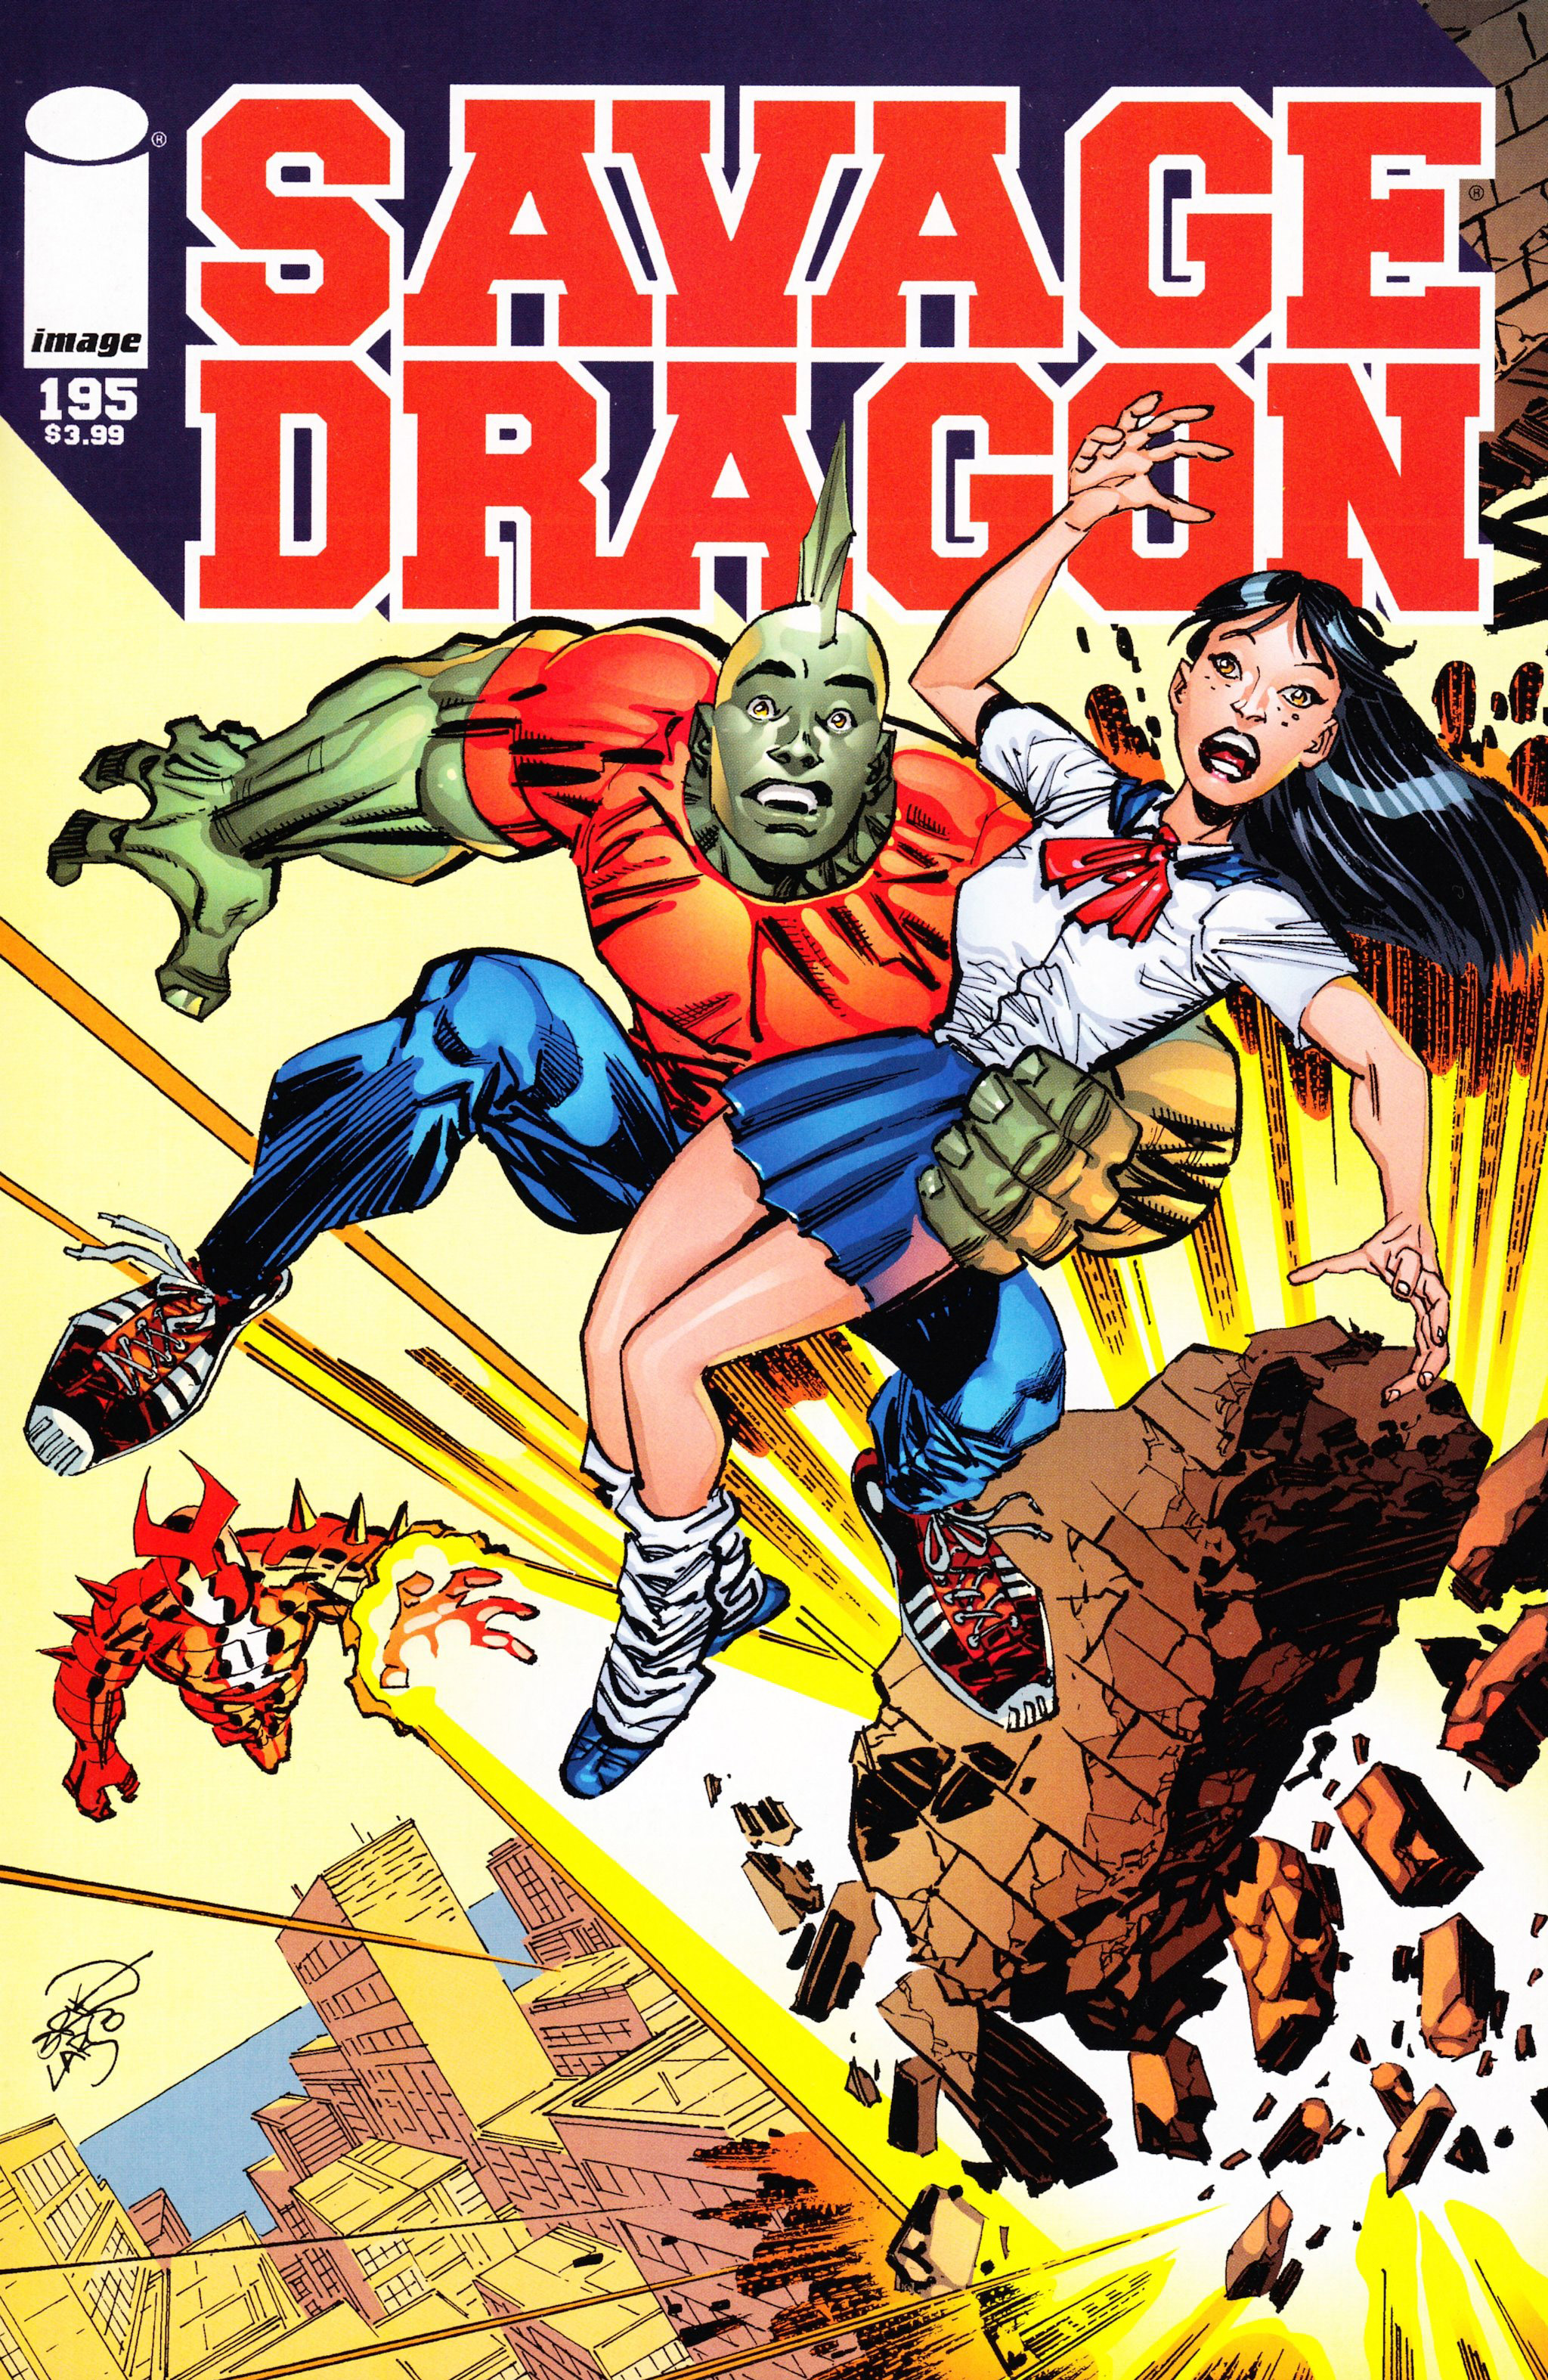 Cover Savage Dragon Vol.2 #195